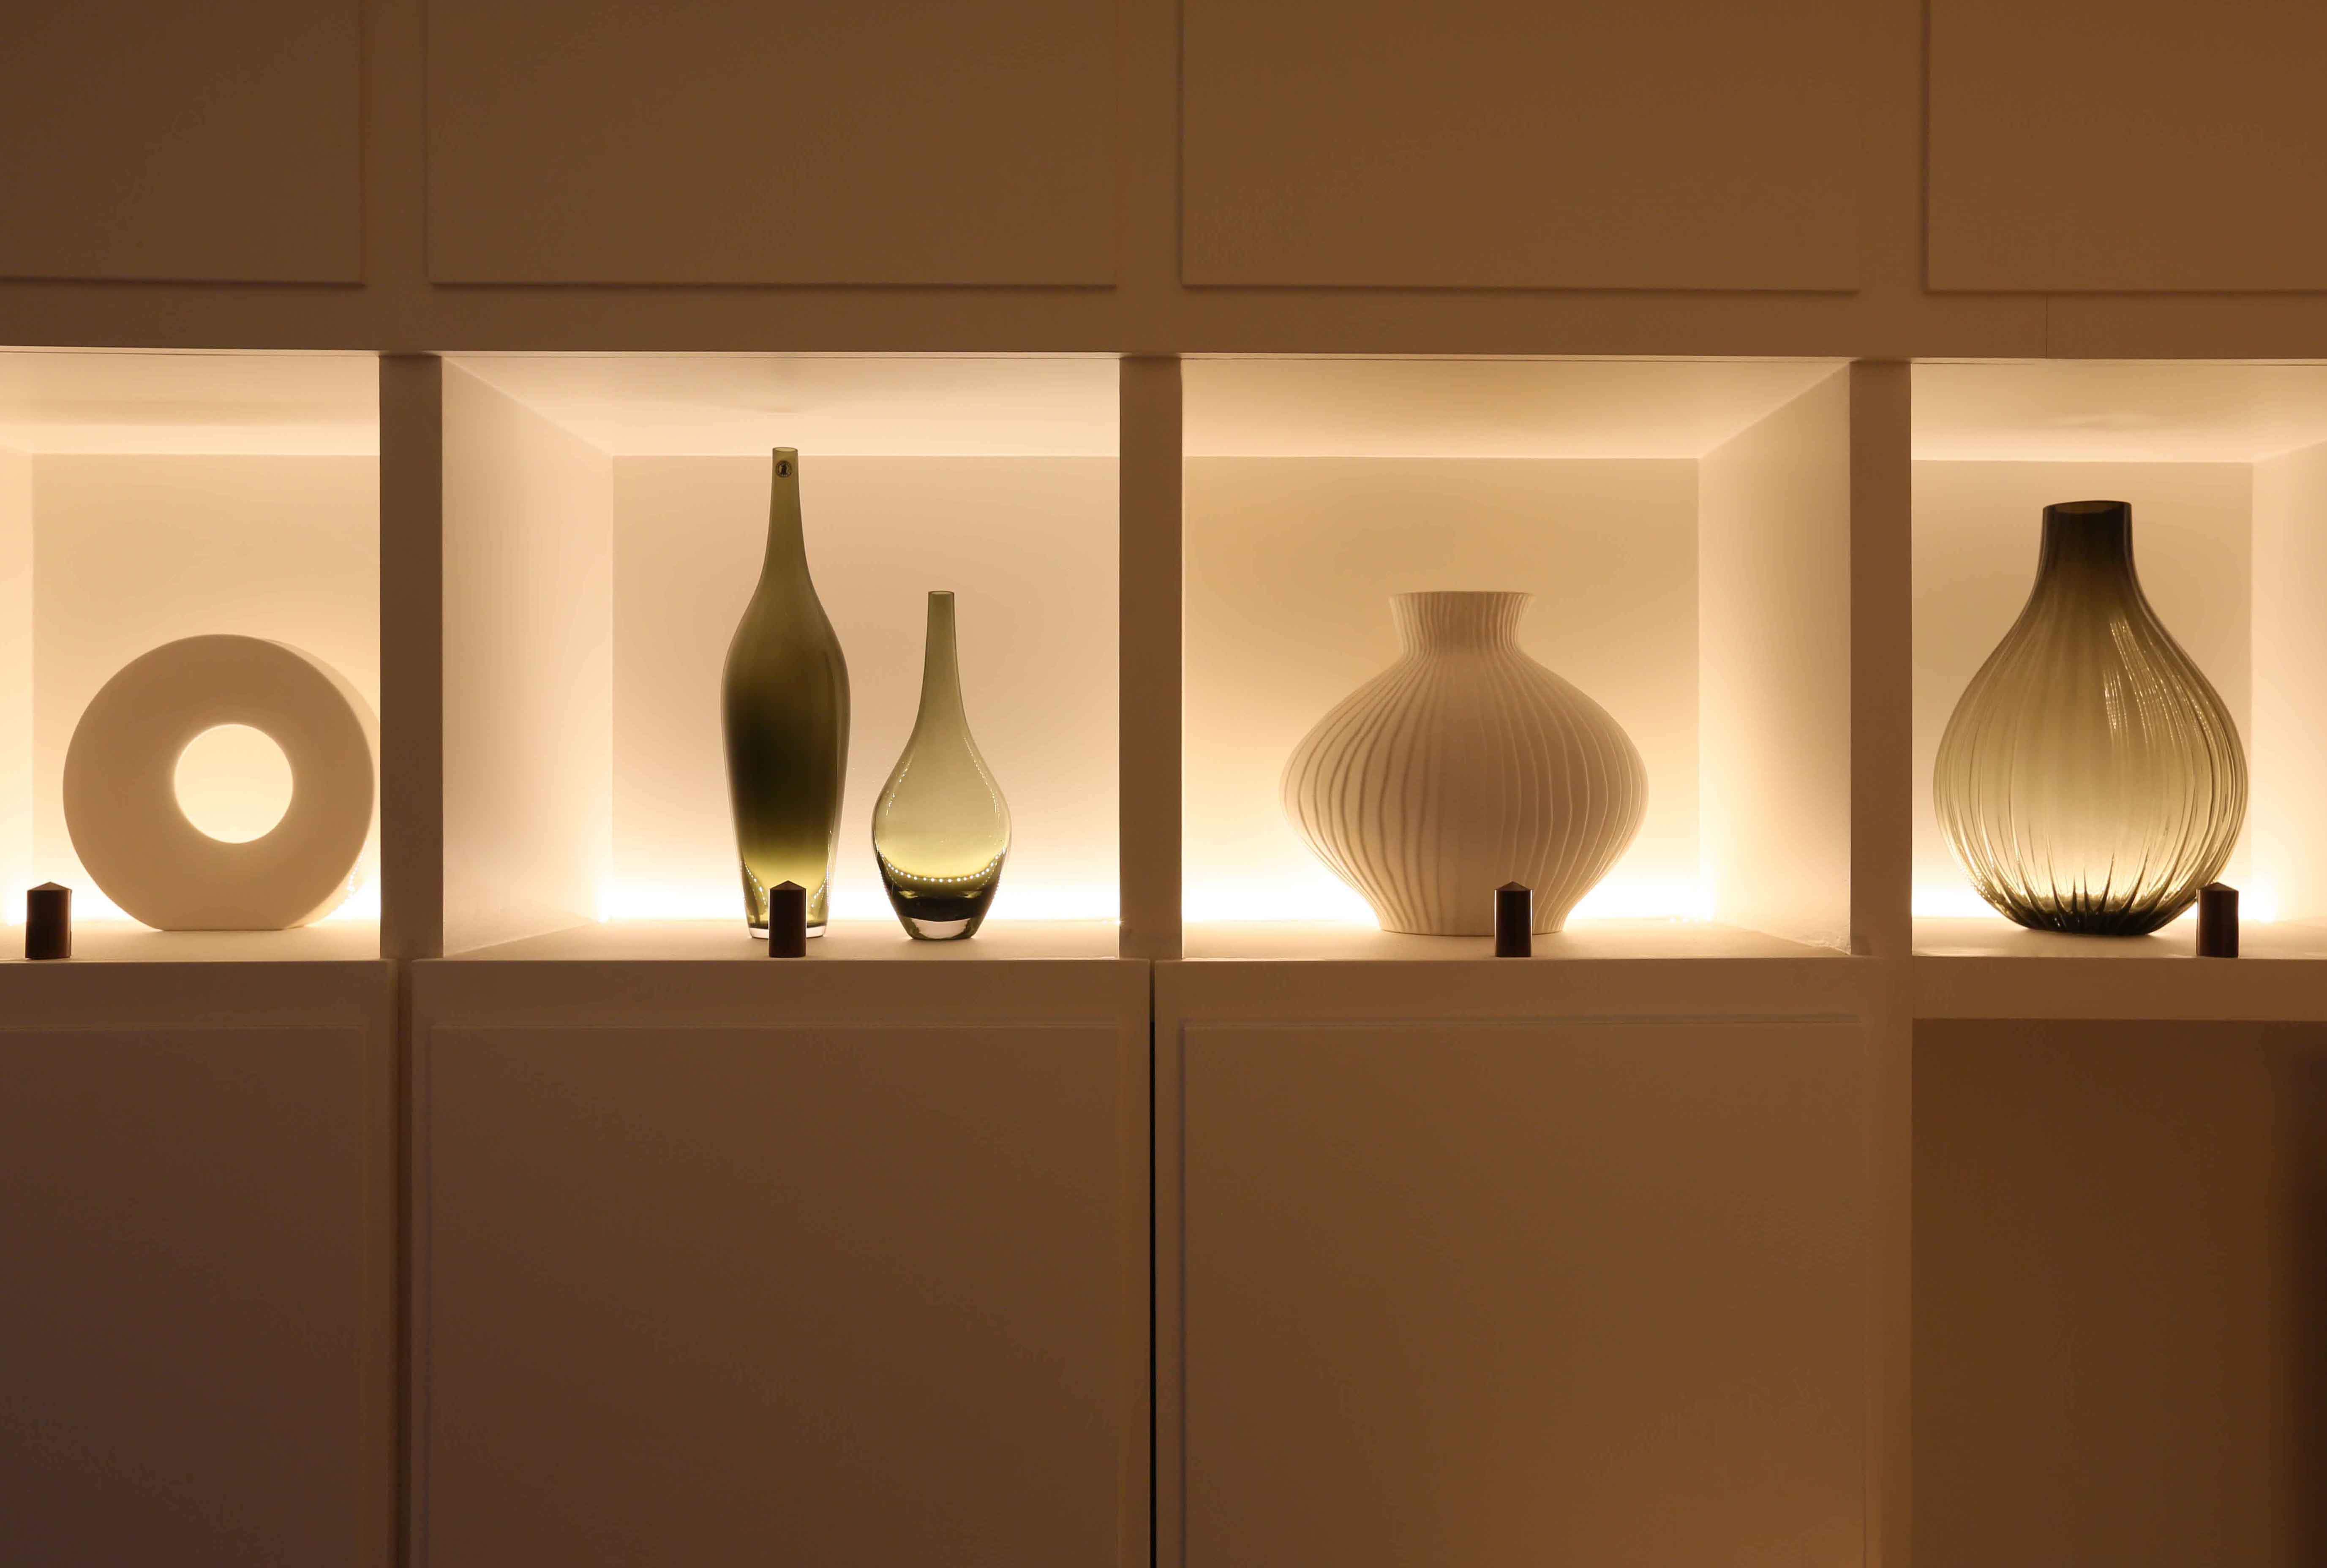 10 simple lighting ideas that will transform your home Sophie Robinson